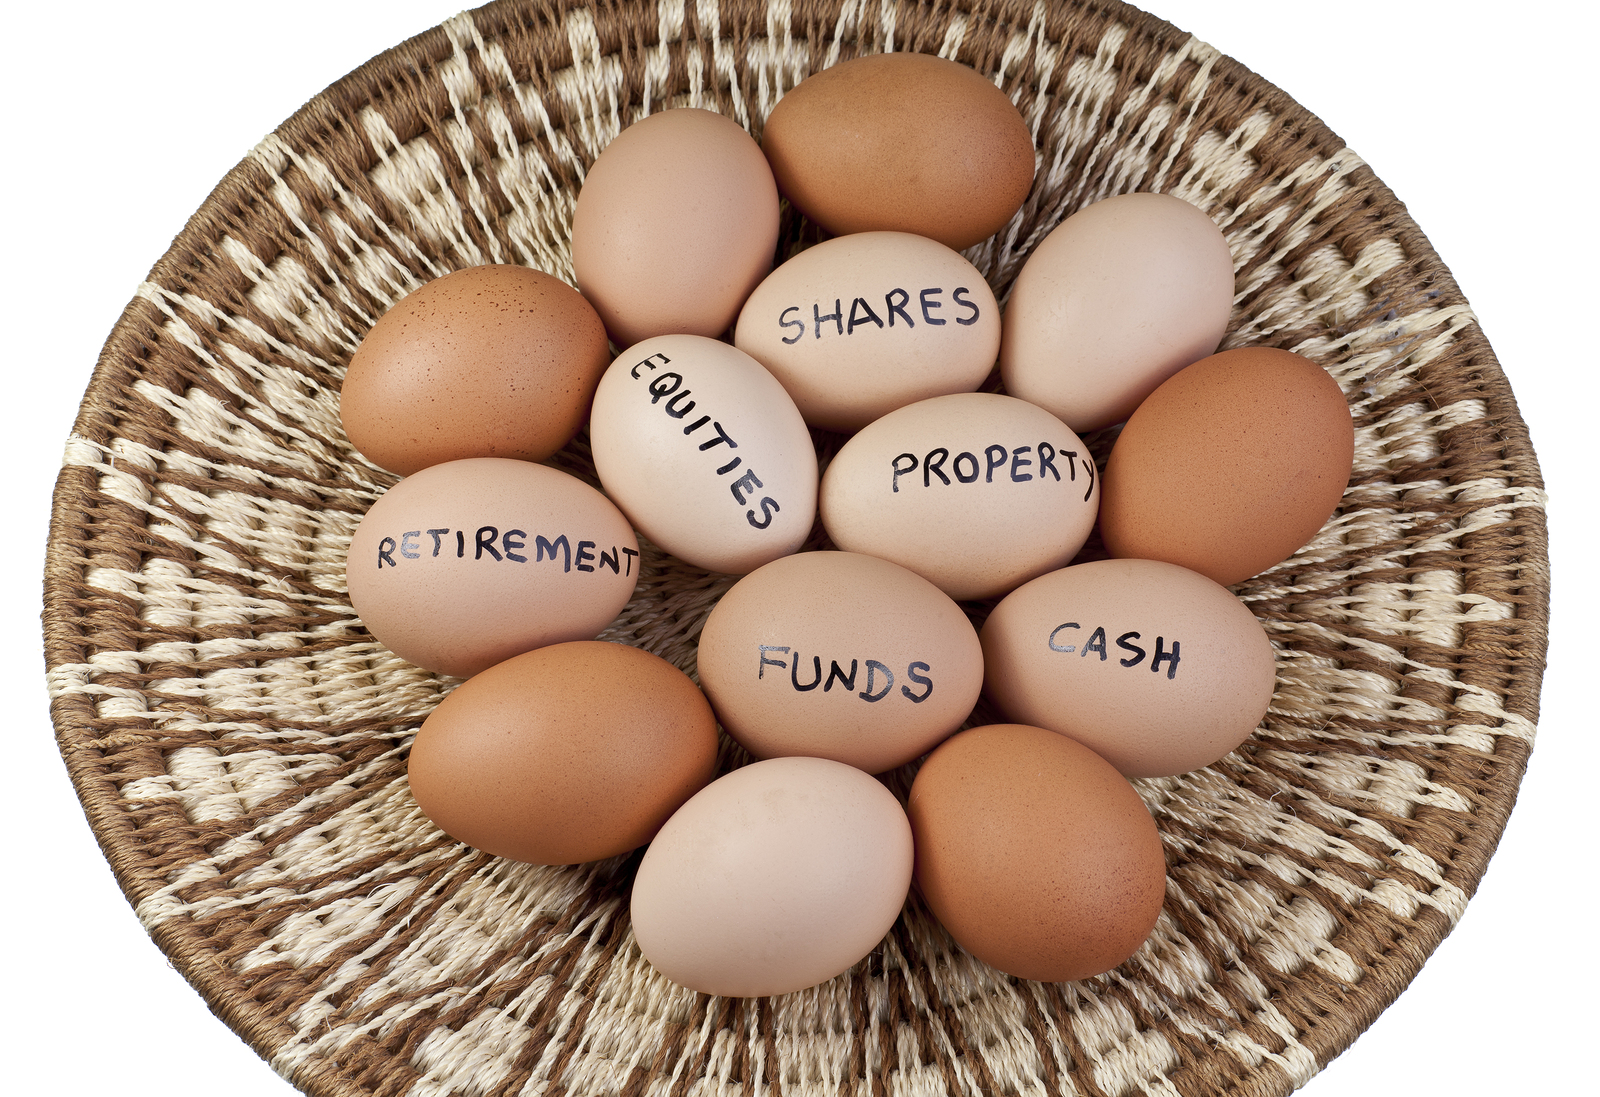 Basket Egg Investment Portfolio Concept